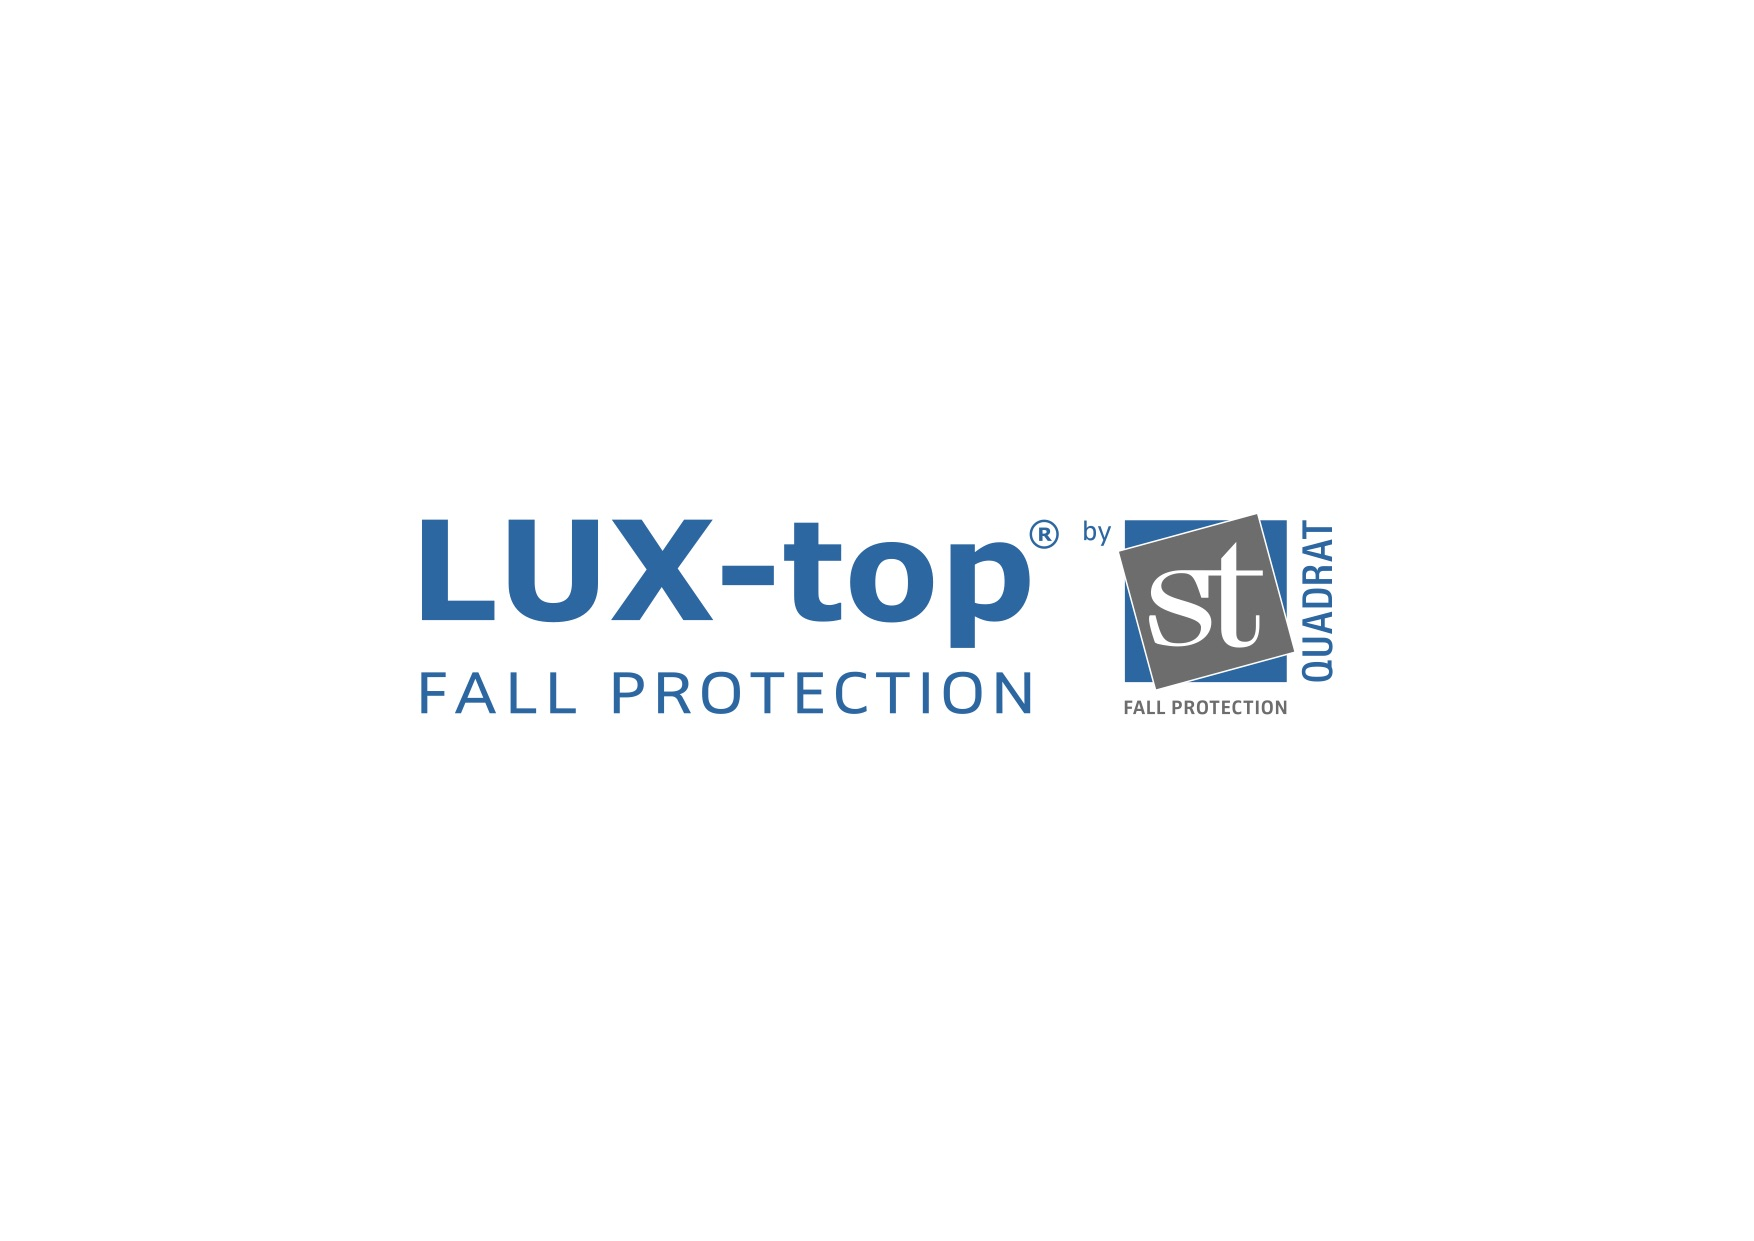 LUX-top_Fall_Protection_by_ST_QUADRAT_4c.jpg